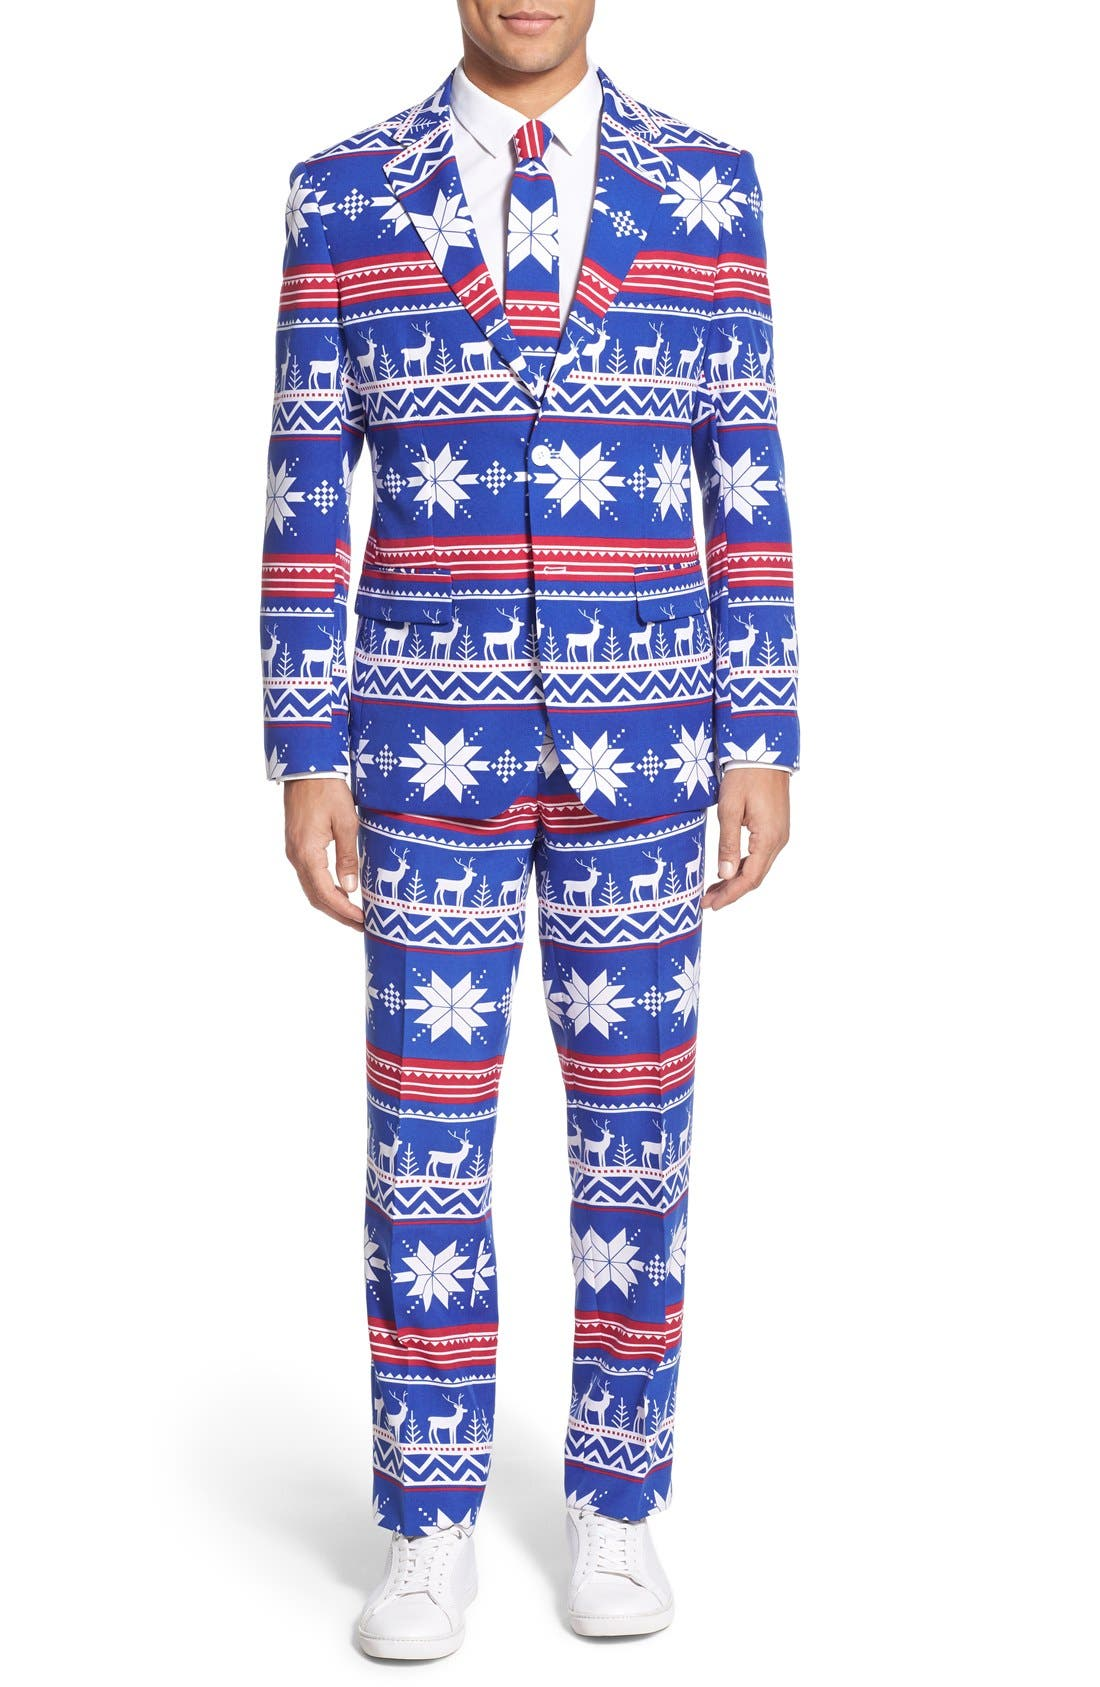 'Rudolph' Holiday Suit & Tie,                         Main,                         color, 400